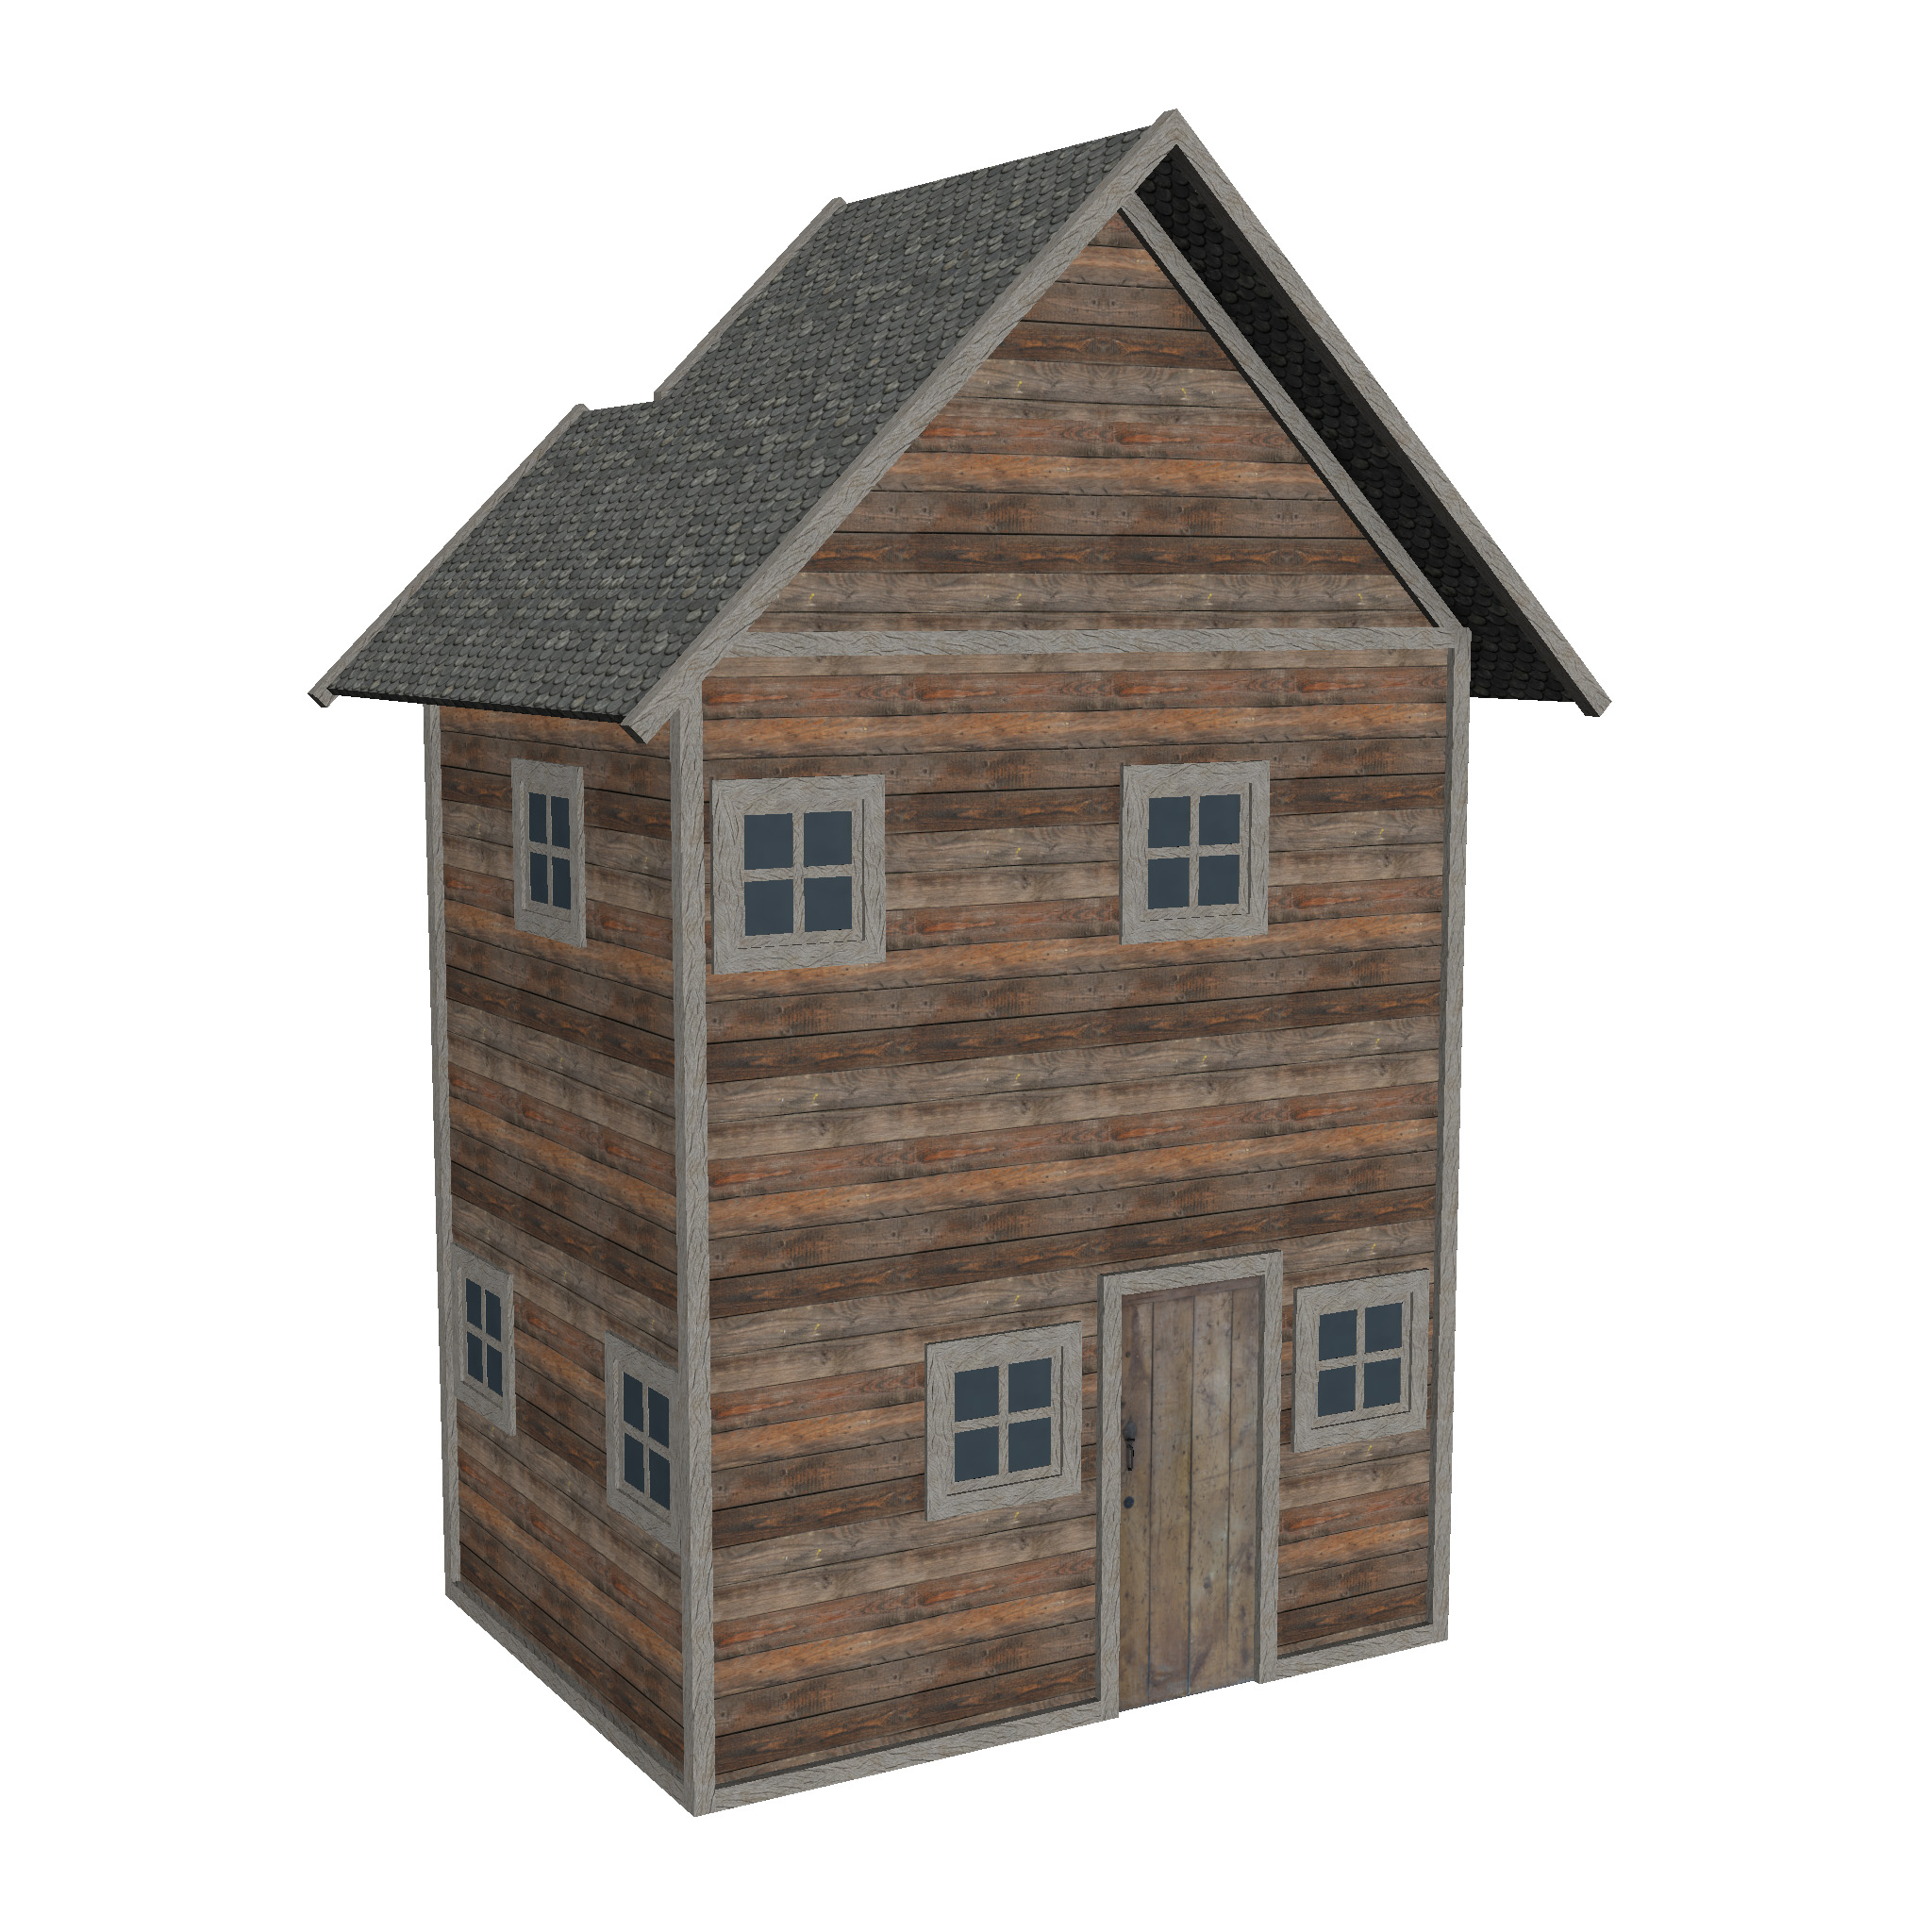 modular wood house set 3d model fbx ma mb 271433